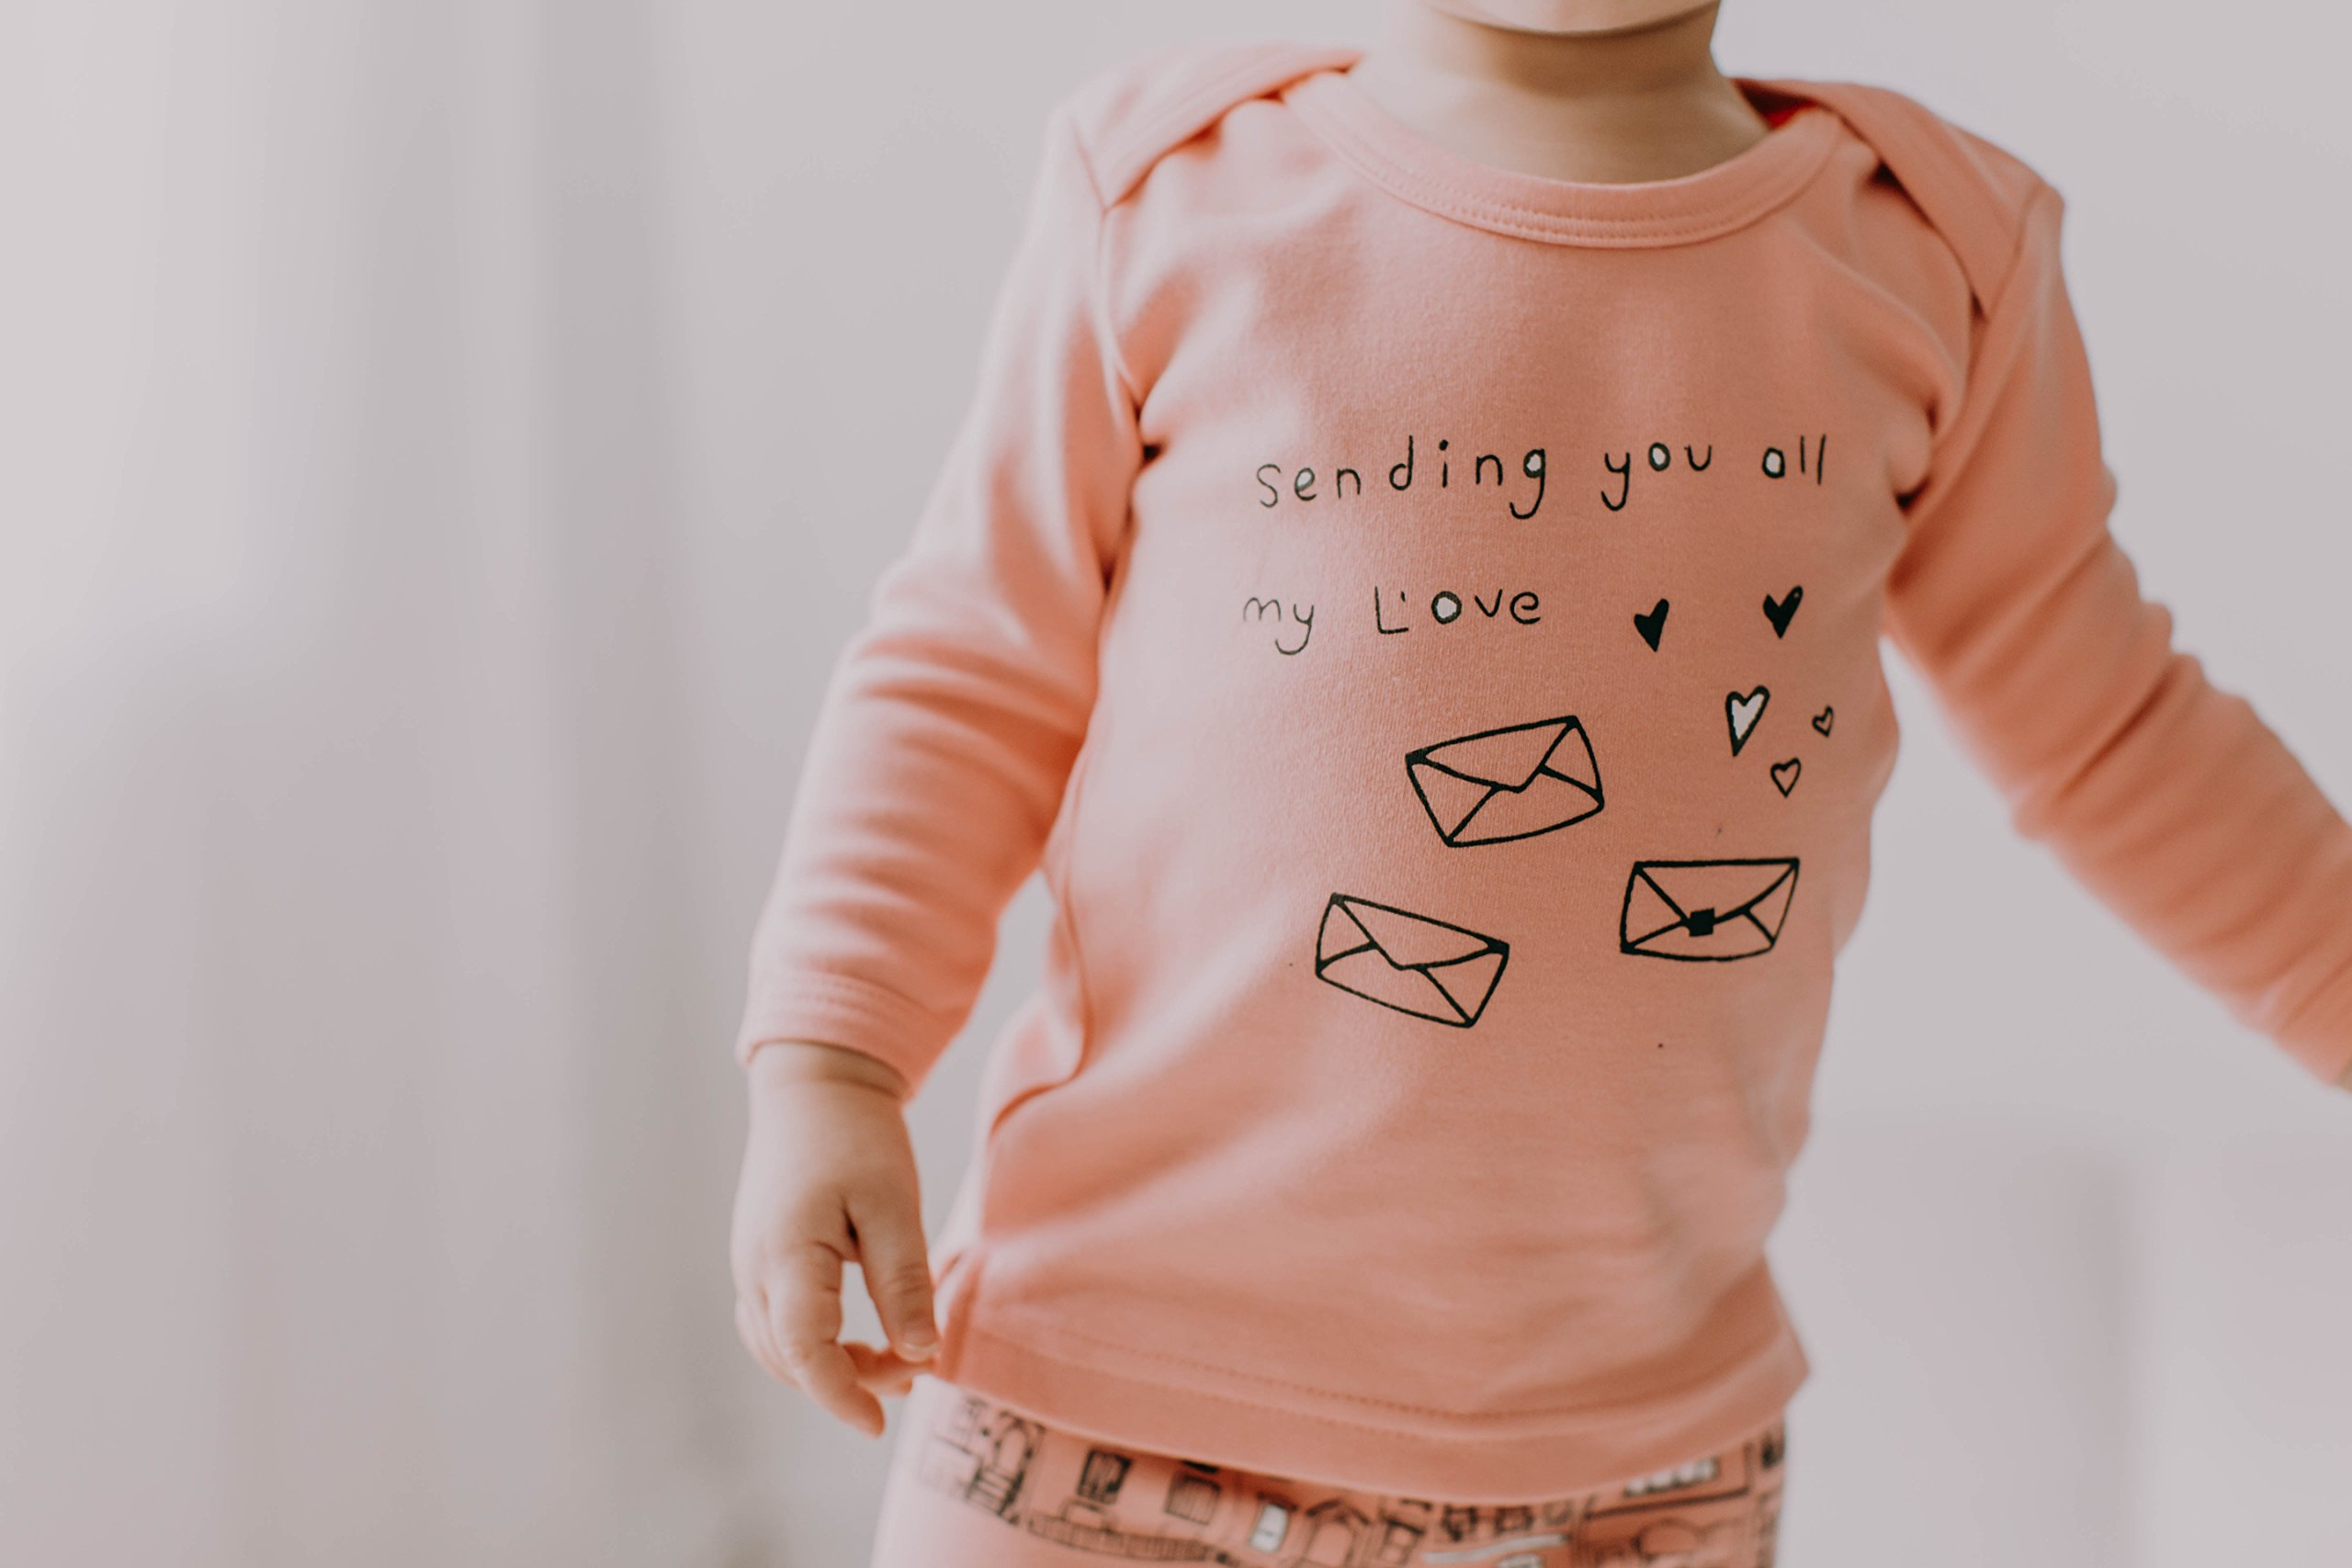 L'ovedbaby Unisex-Baby Organic Cotton Long Sleeve Shirt (Coral Sending My L'ove, 18-24 Months) by L'ovedbaby (Image #2)